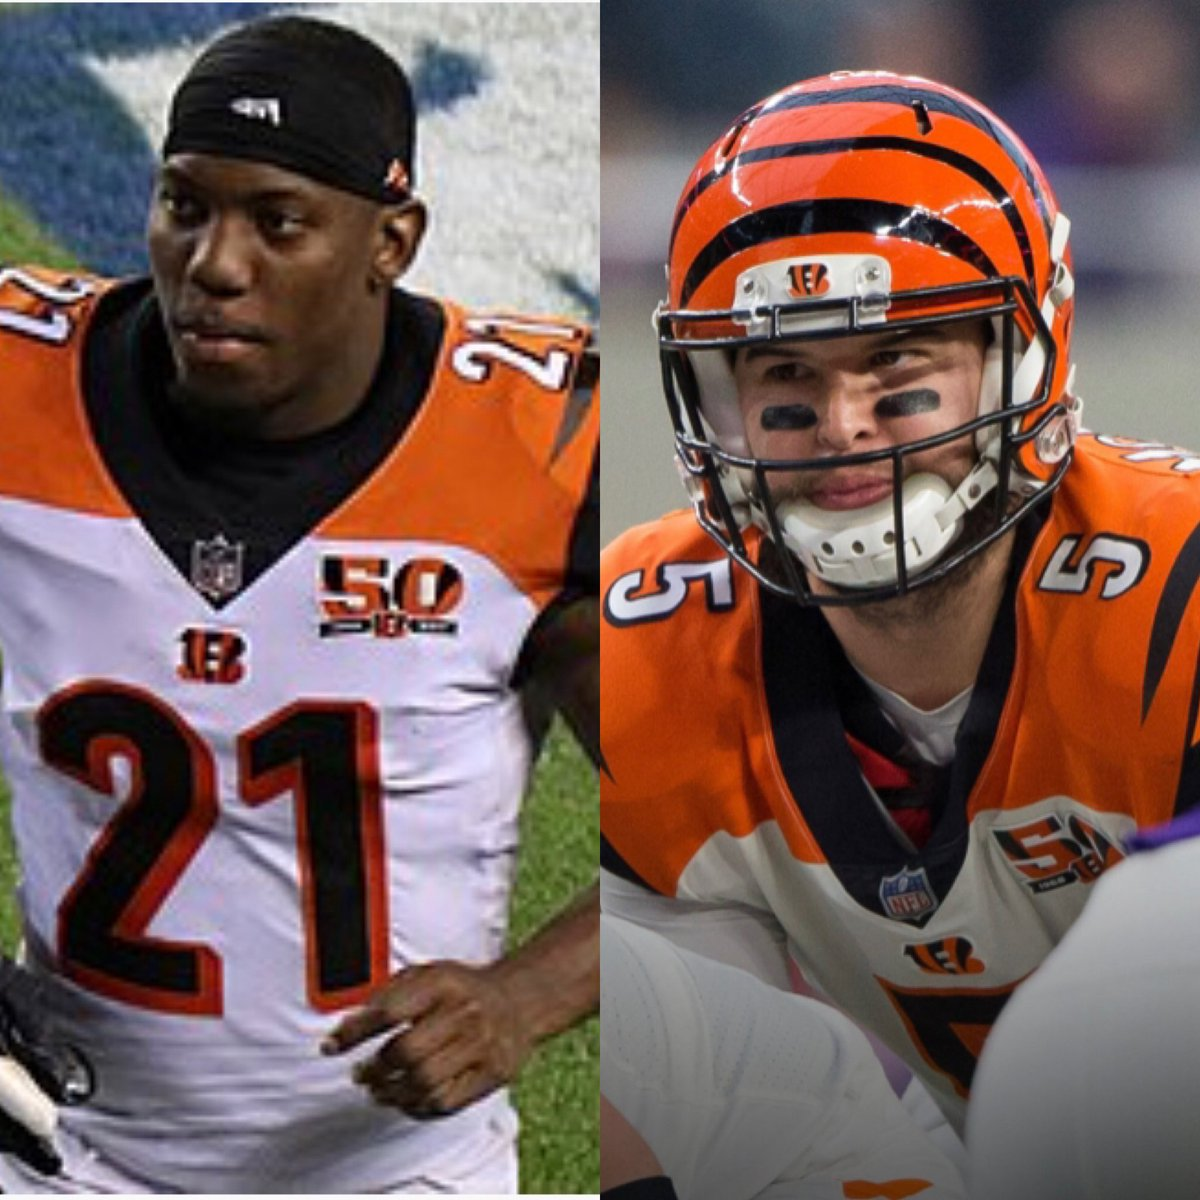 So #BengalsTwitter nation, we are into the first weekend of ⁦@NFL⁩ free agency. Is Darquez Dennard about to learn what AJ McCarron did last year?! He and his reps OVERVALUED his worth. He's a slot corner like McCarron was just a backup. He'll be paid as a SLOT CB. <br>http://pic.twitter.com/jmQjfNP6q9